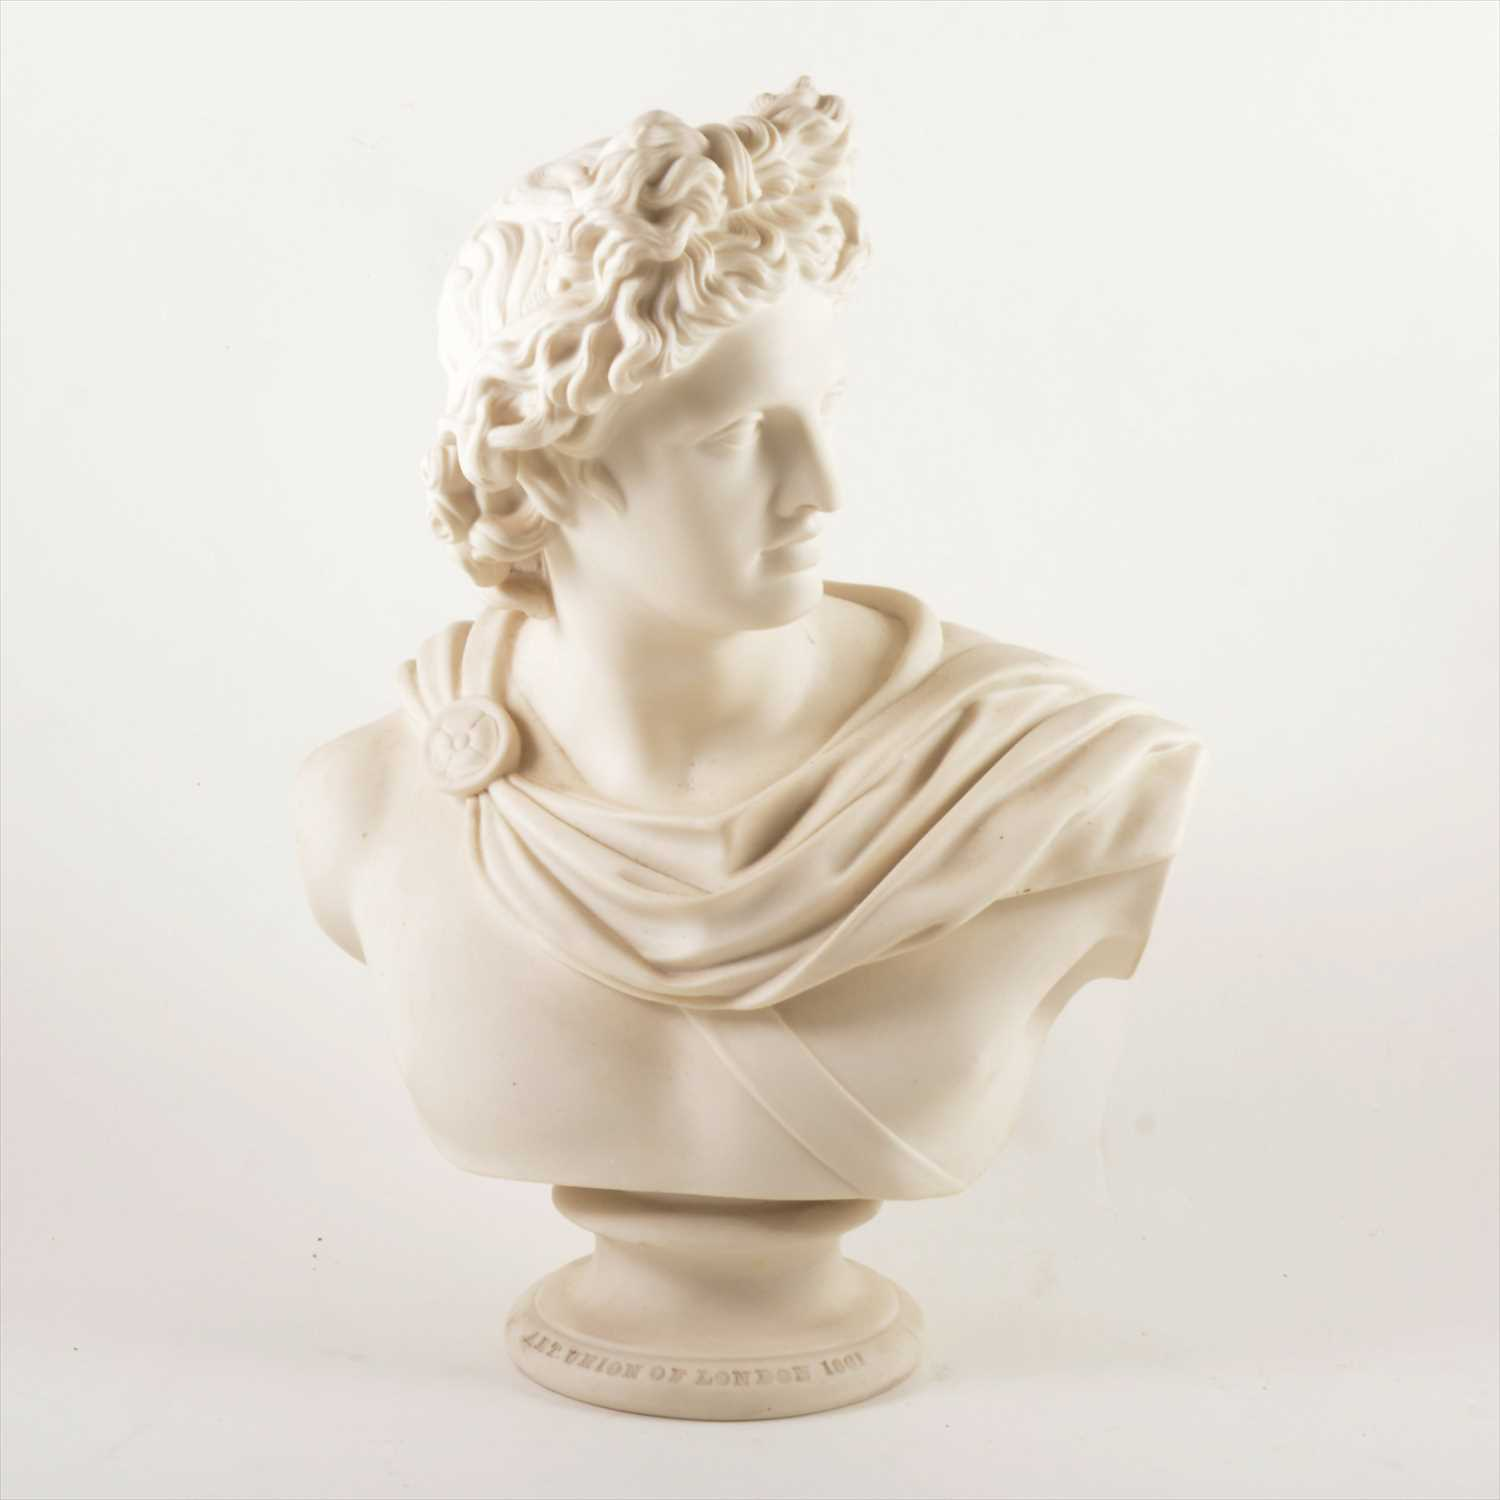 Lot 525-After C Delpech, Apollo Belvedere, a Victorian parian bust, for the Art Union of London, 1861.